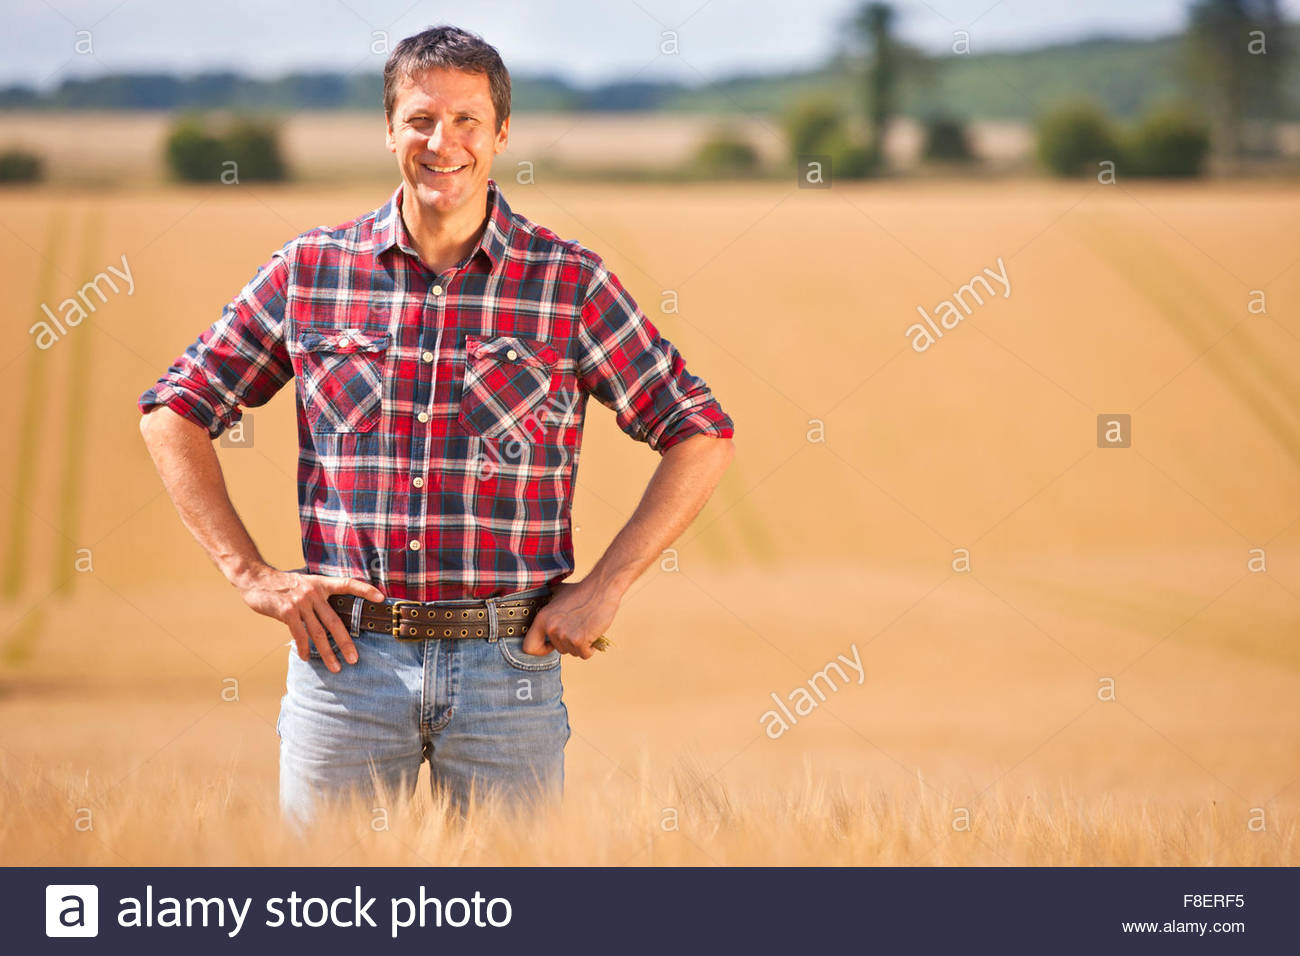 Portrait confident farmer with hands on hips in sunny rural barley crop field - Stock Image